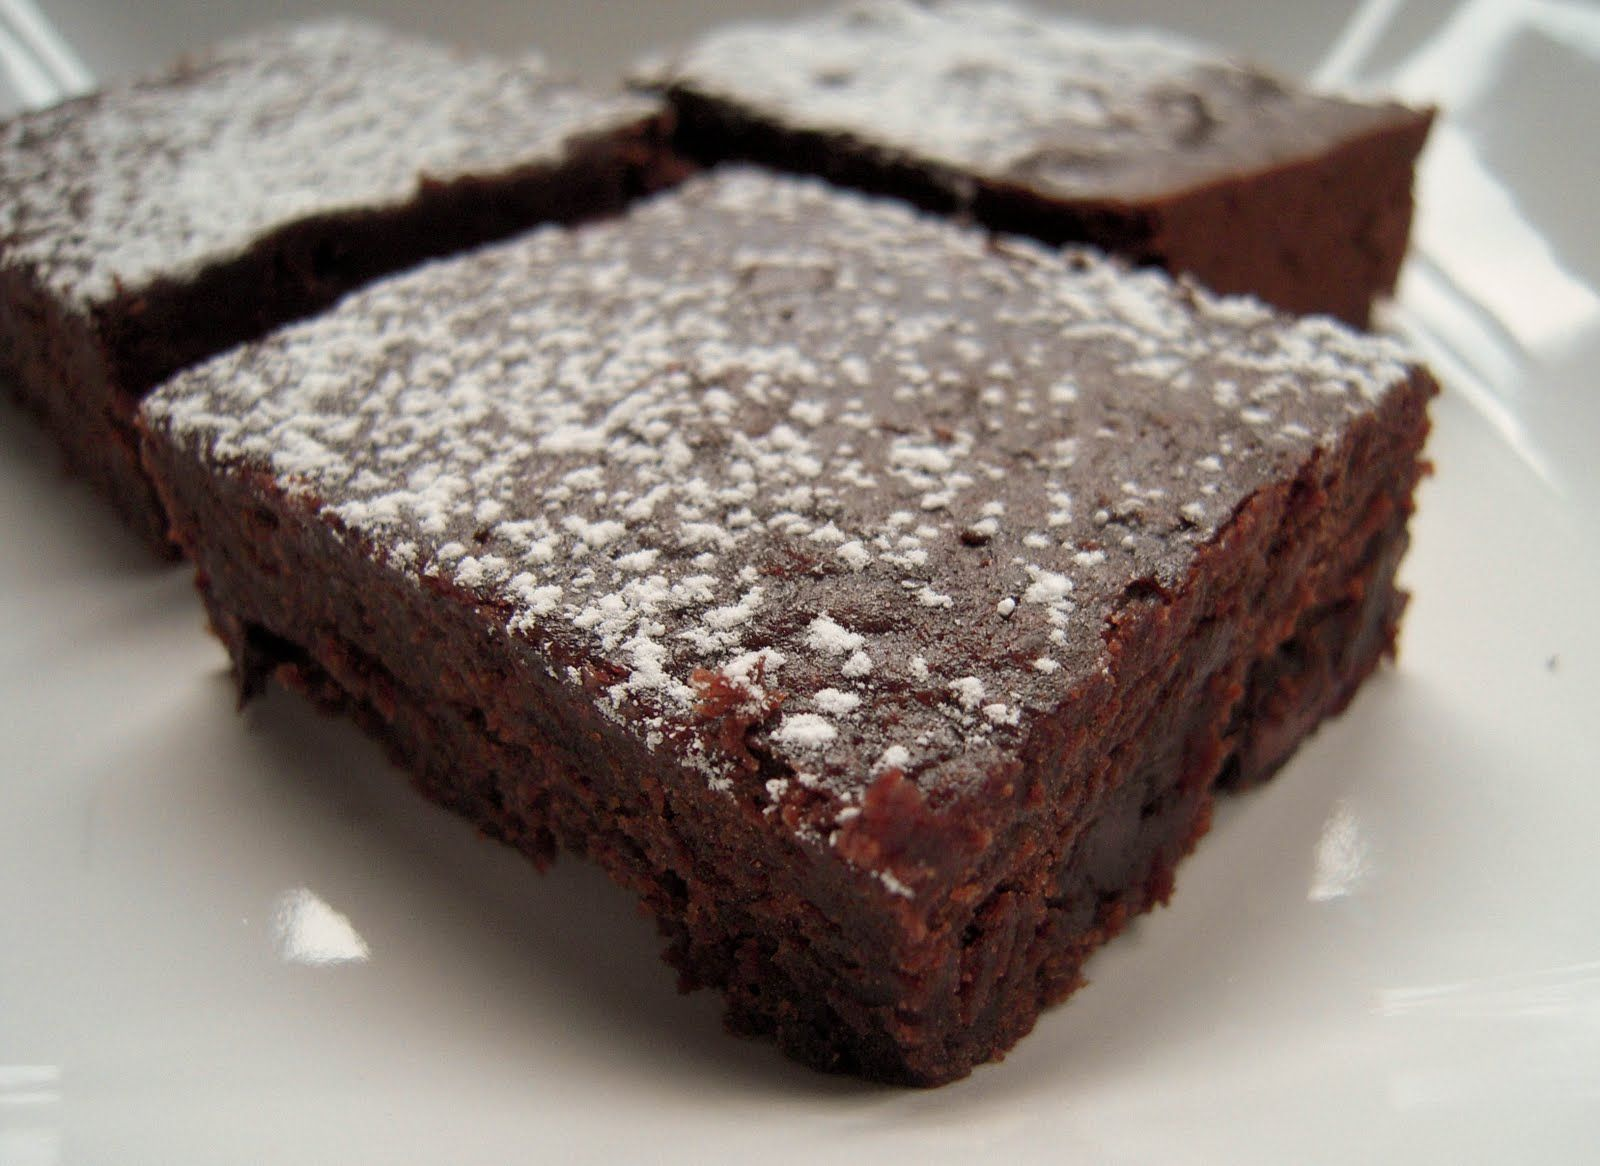 brownies with black beans instead of oil and eggs...made them ...very good. Didn't rinse the beans, used the liquid in the can of beans.